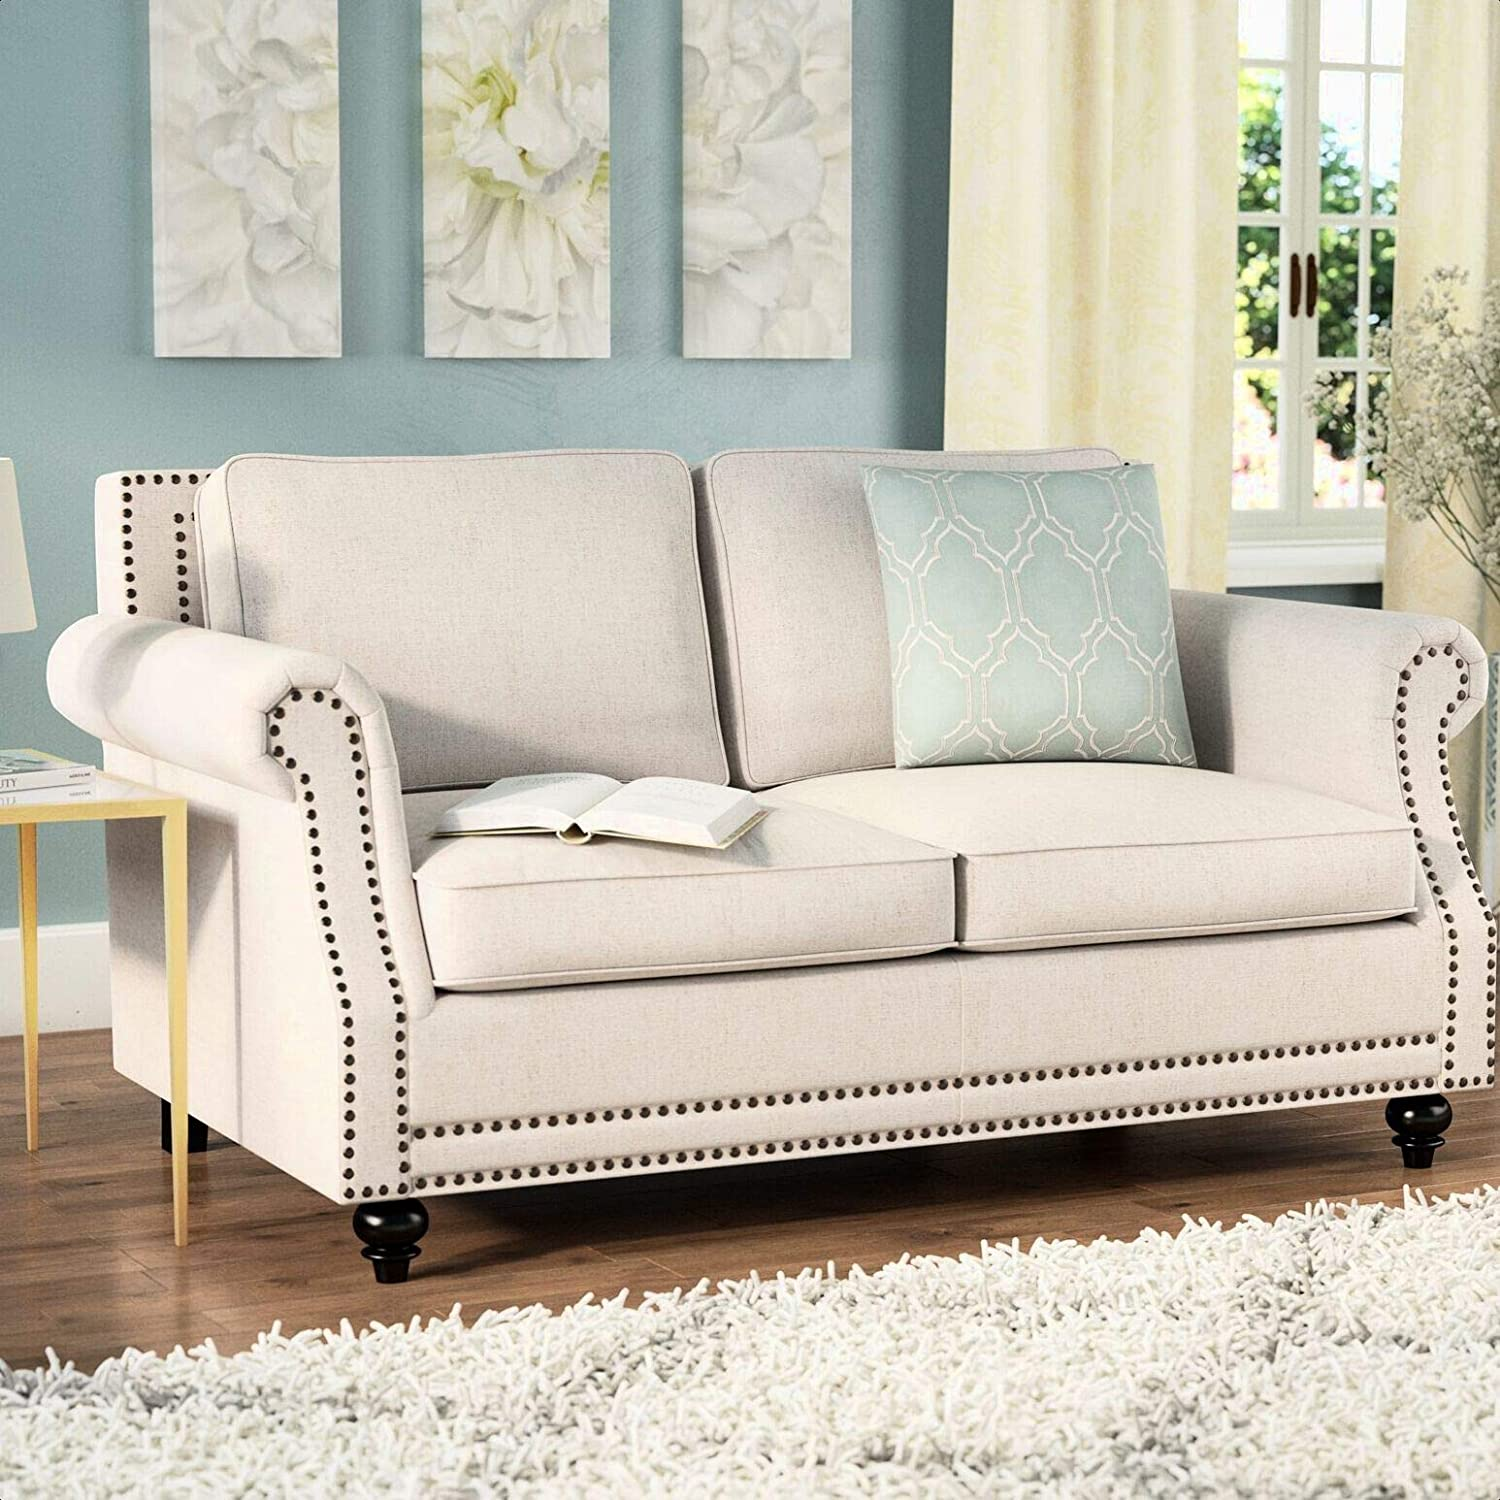 Cadwell 64 6 Round Arm Loveseat Removable Back Cushions Upholstery Material Linen Blend Kitchen Dining